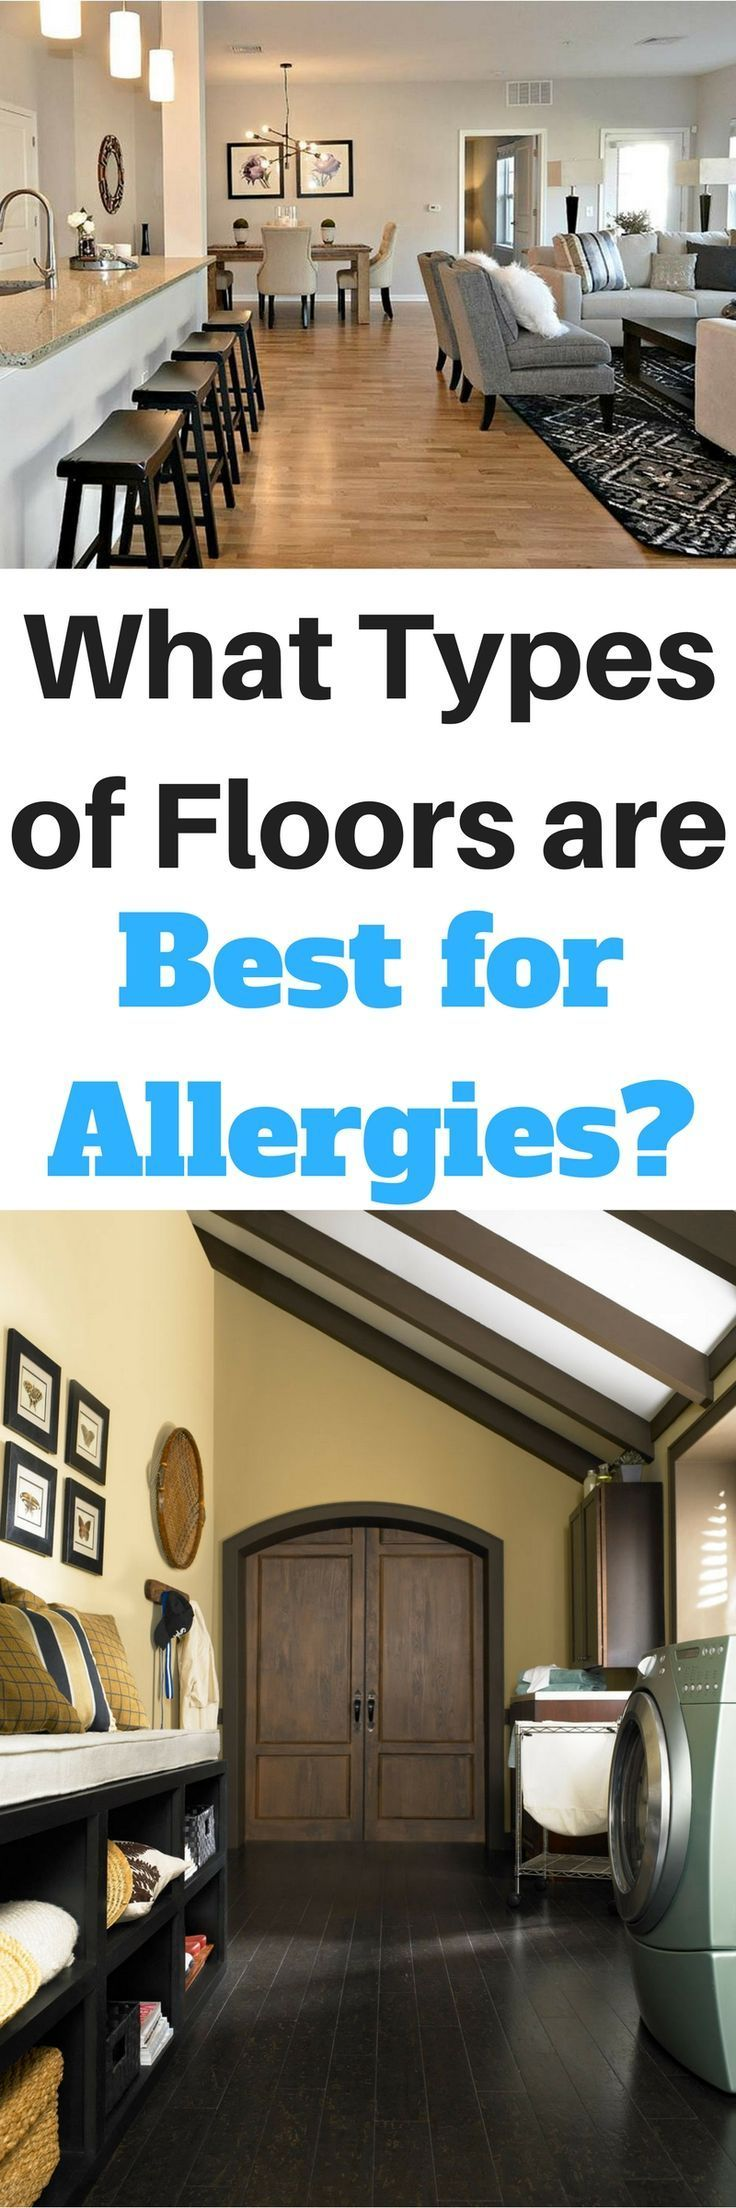 What types of floors are best if you have allergies or asthma